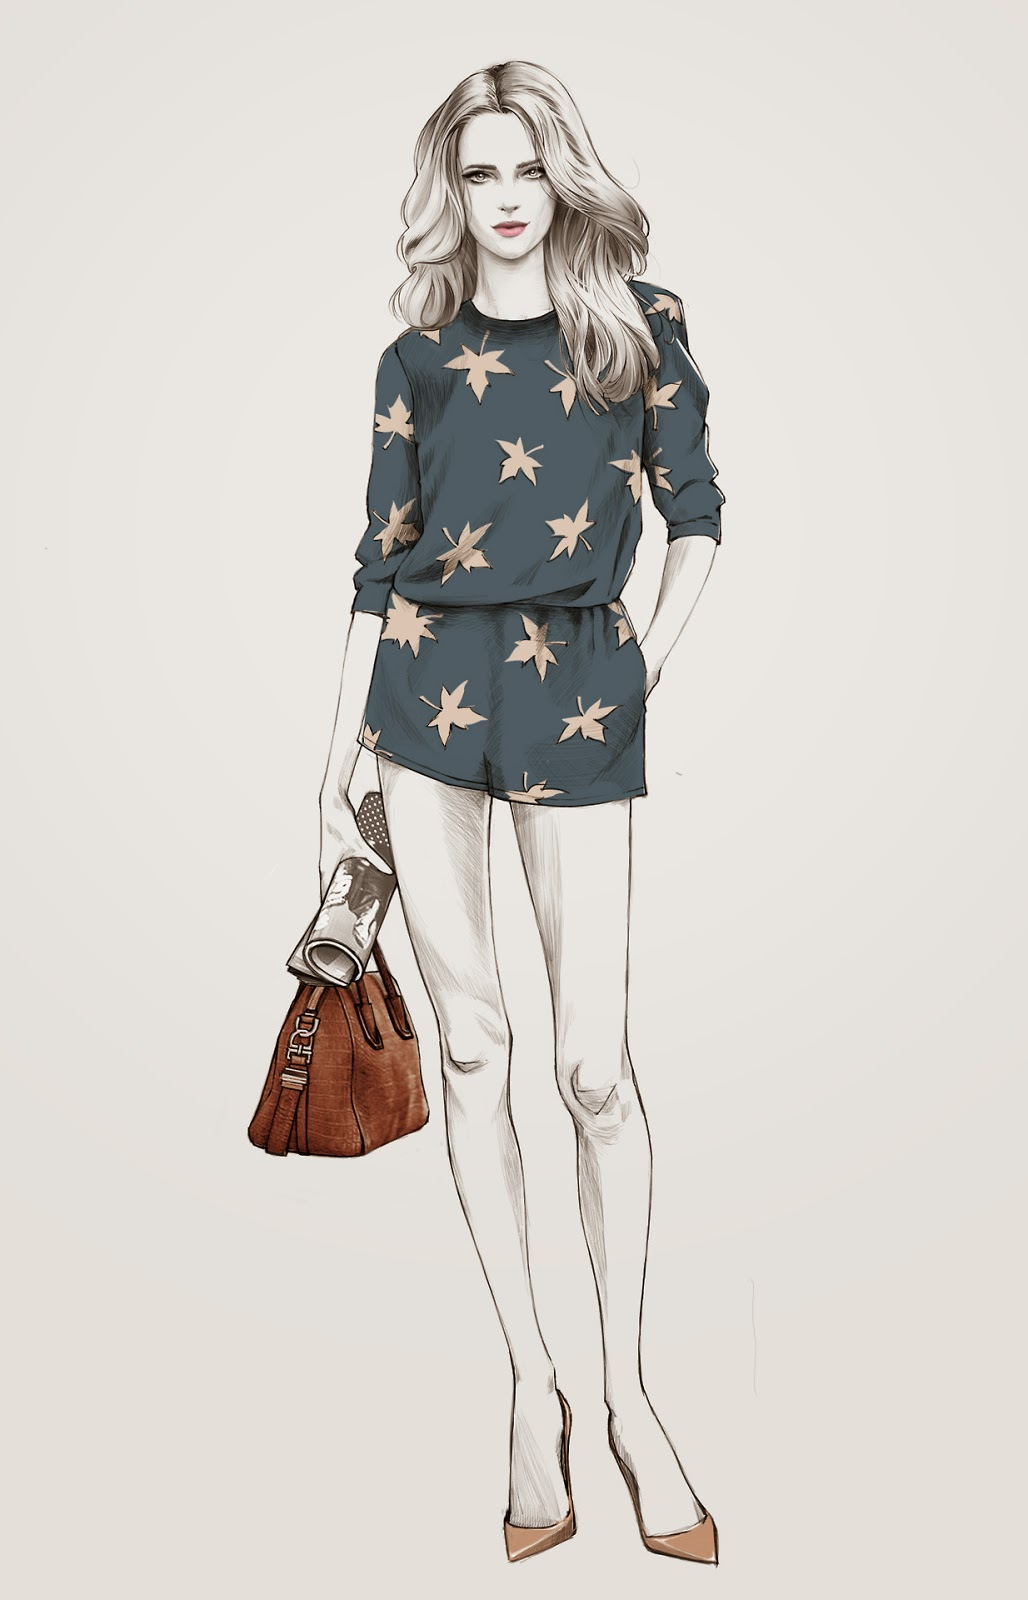 Fashion illustration portfolio sets